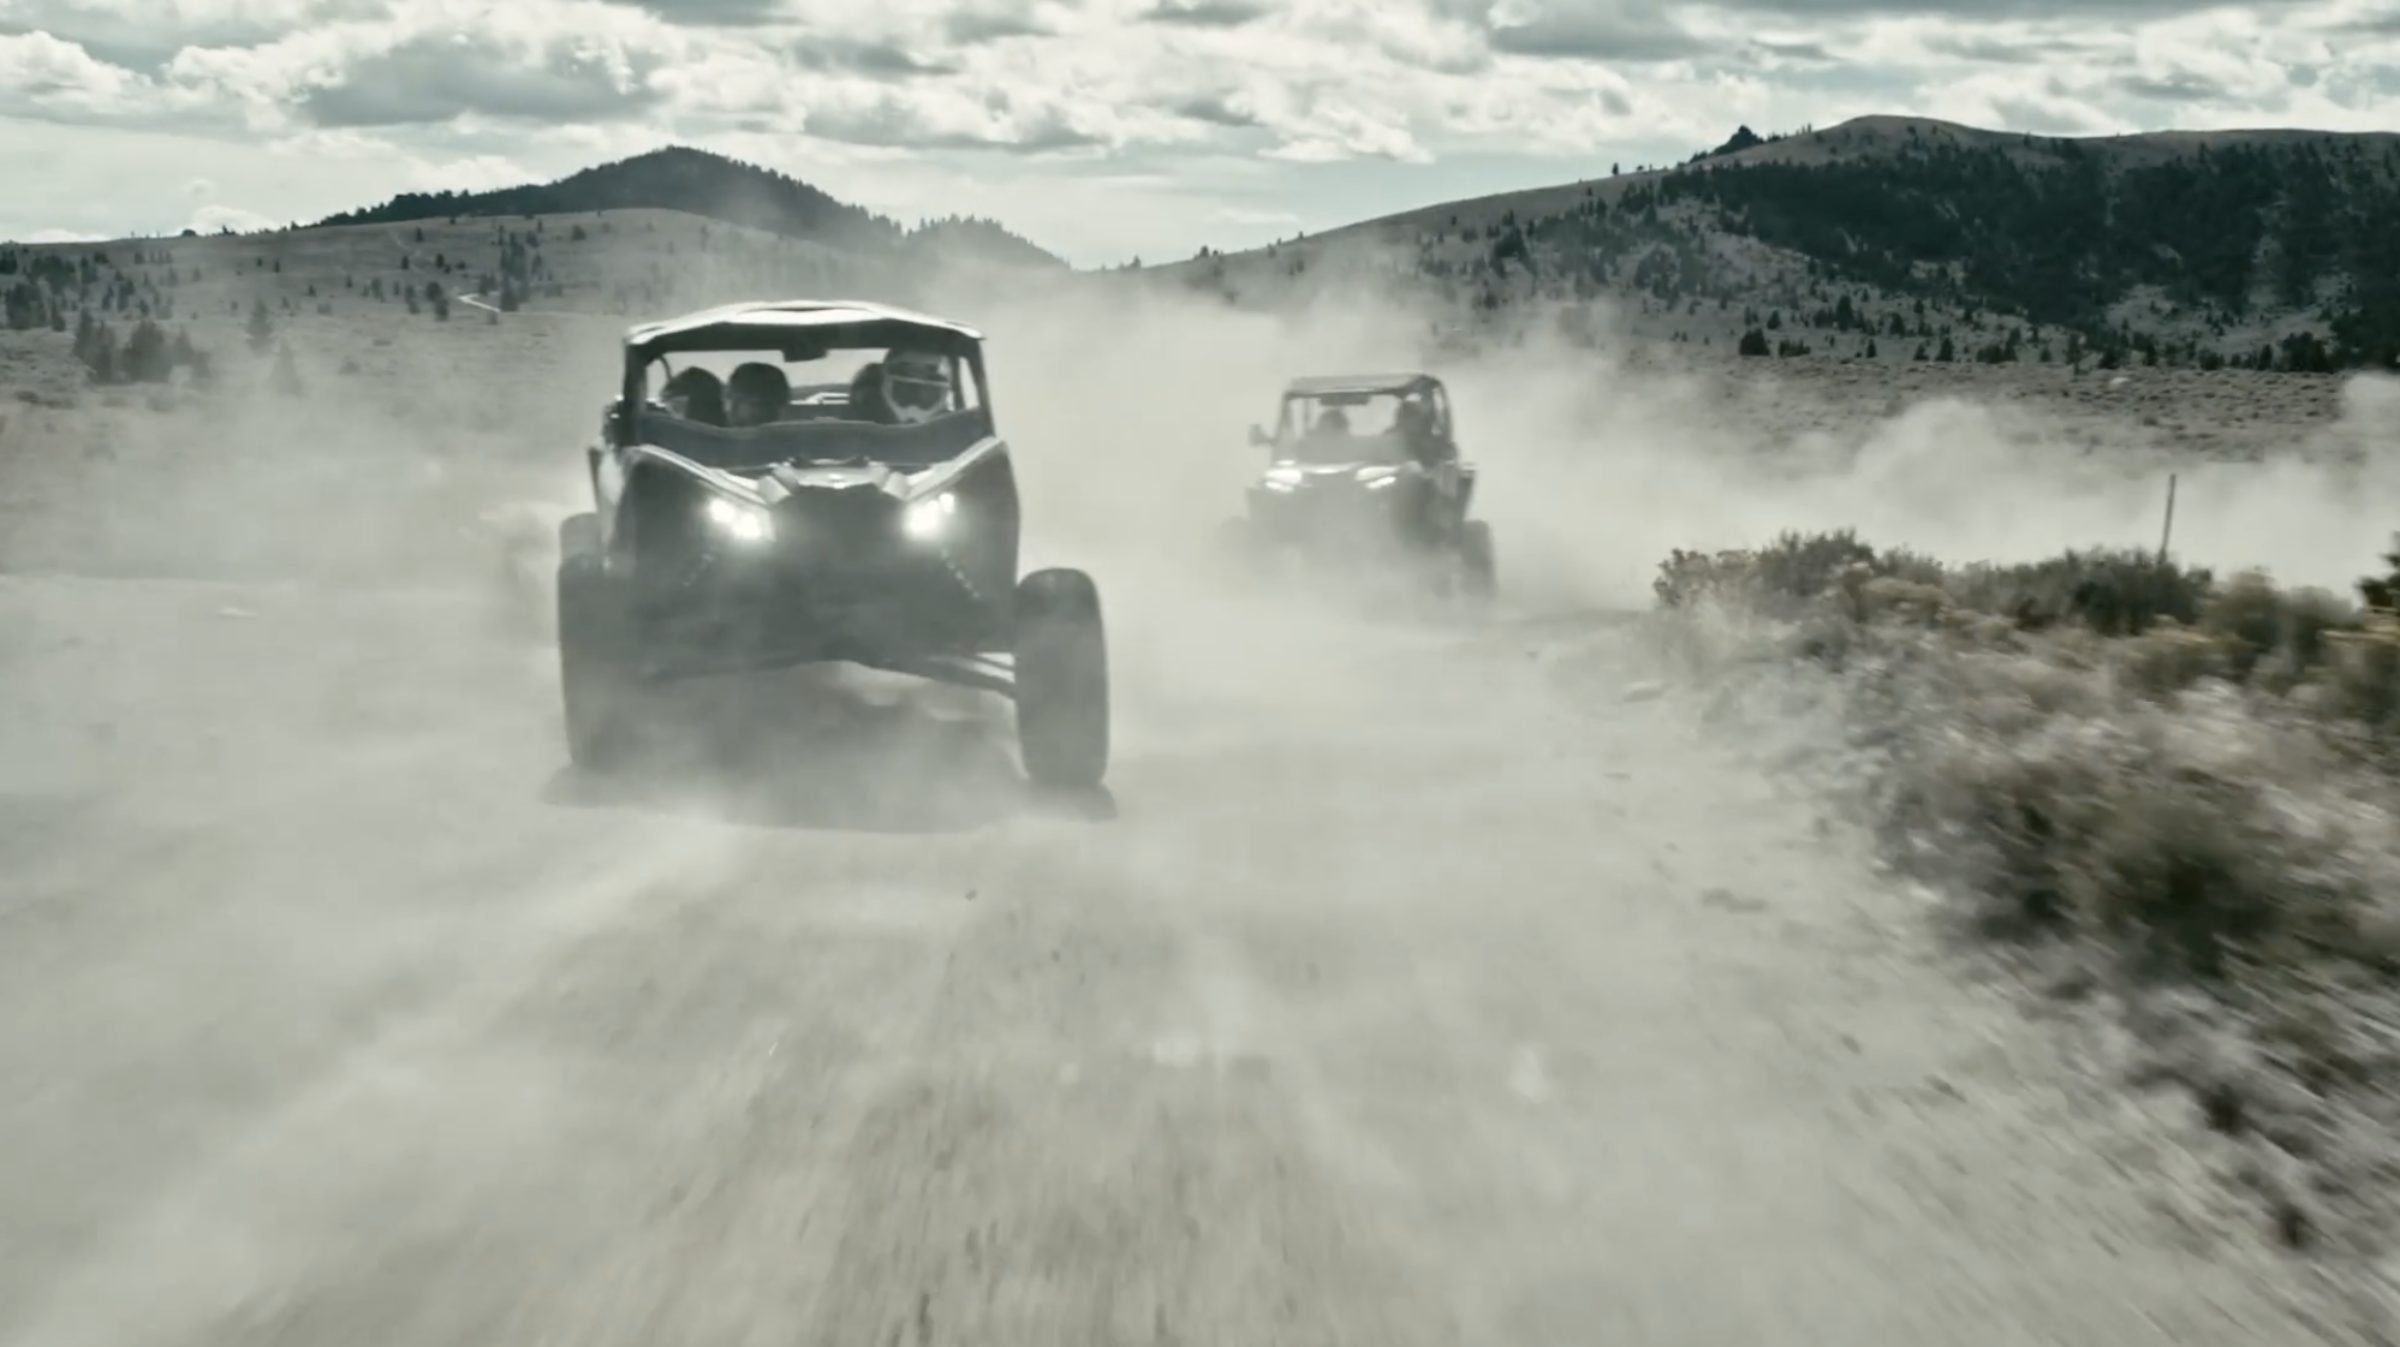 On X Offroad